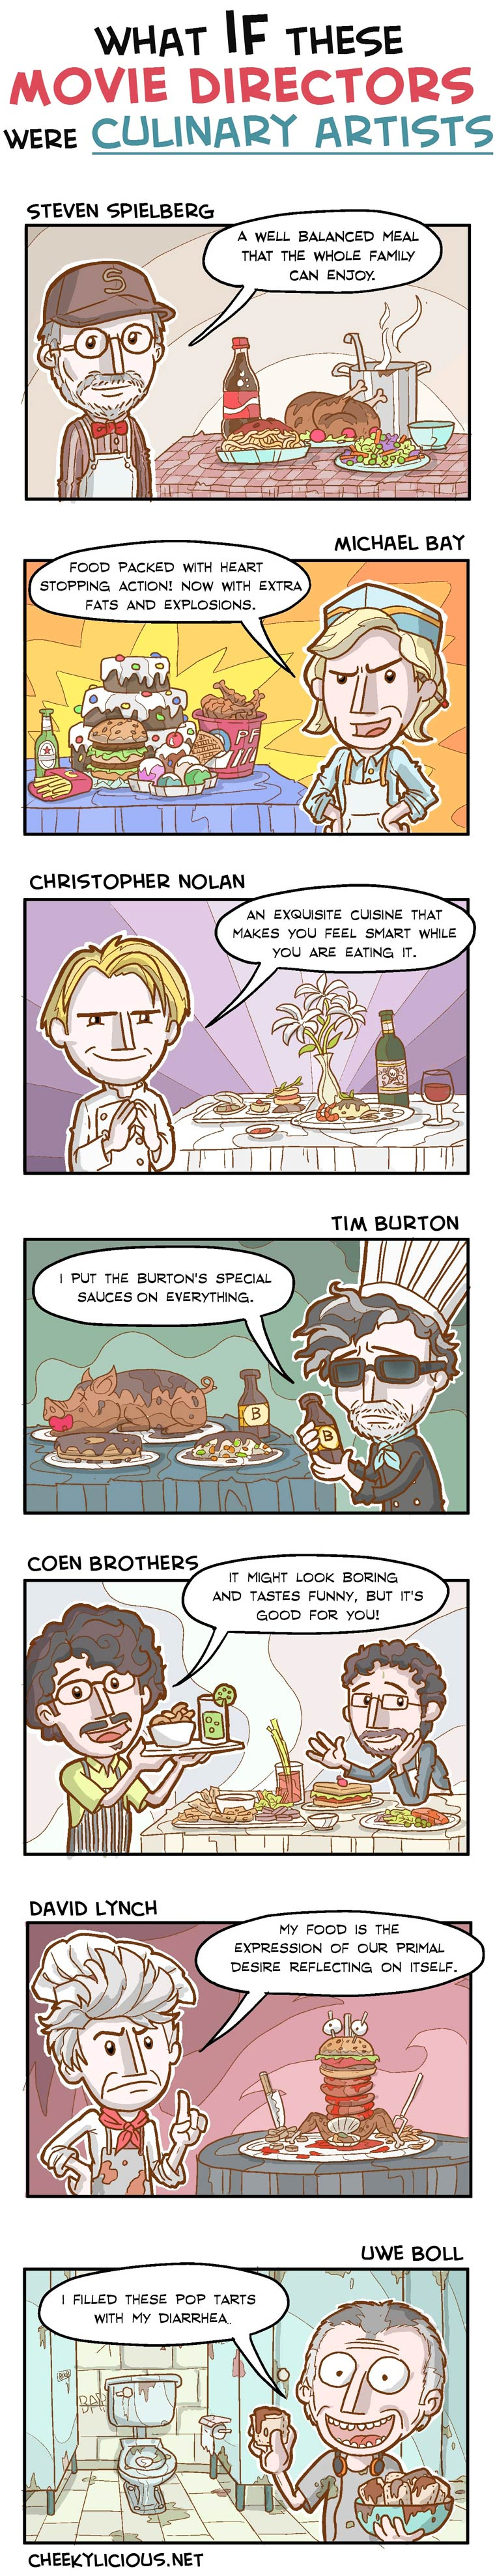 If famous movie directors were culinary artists